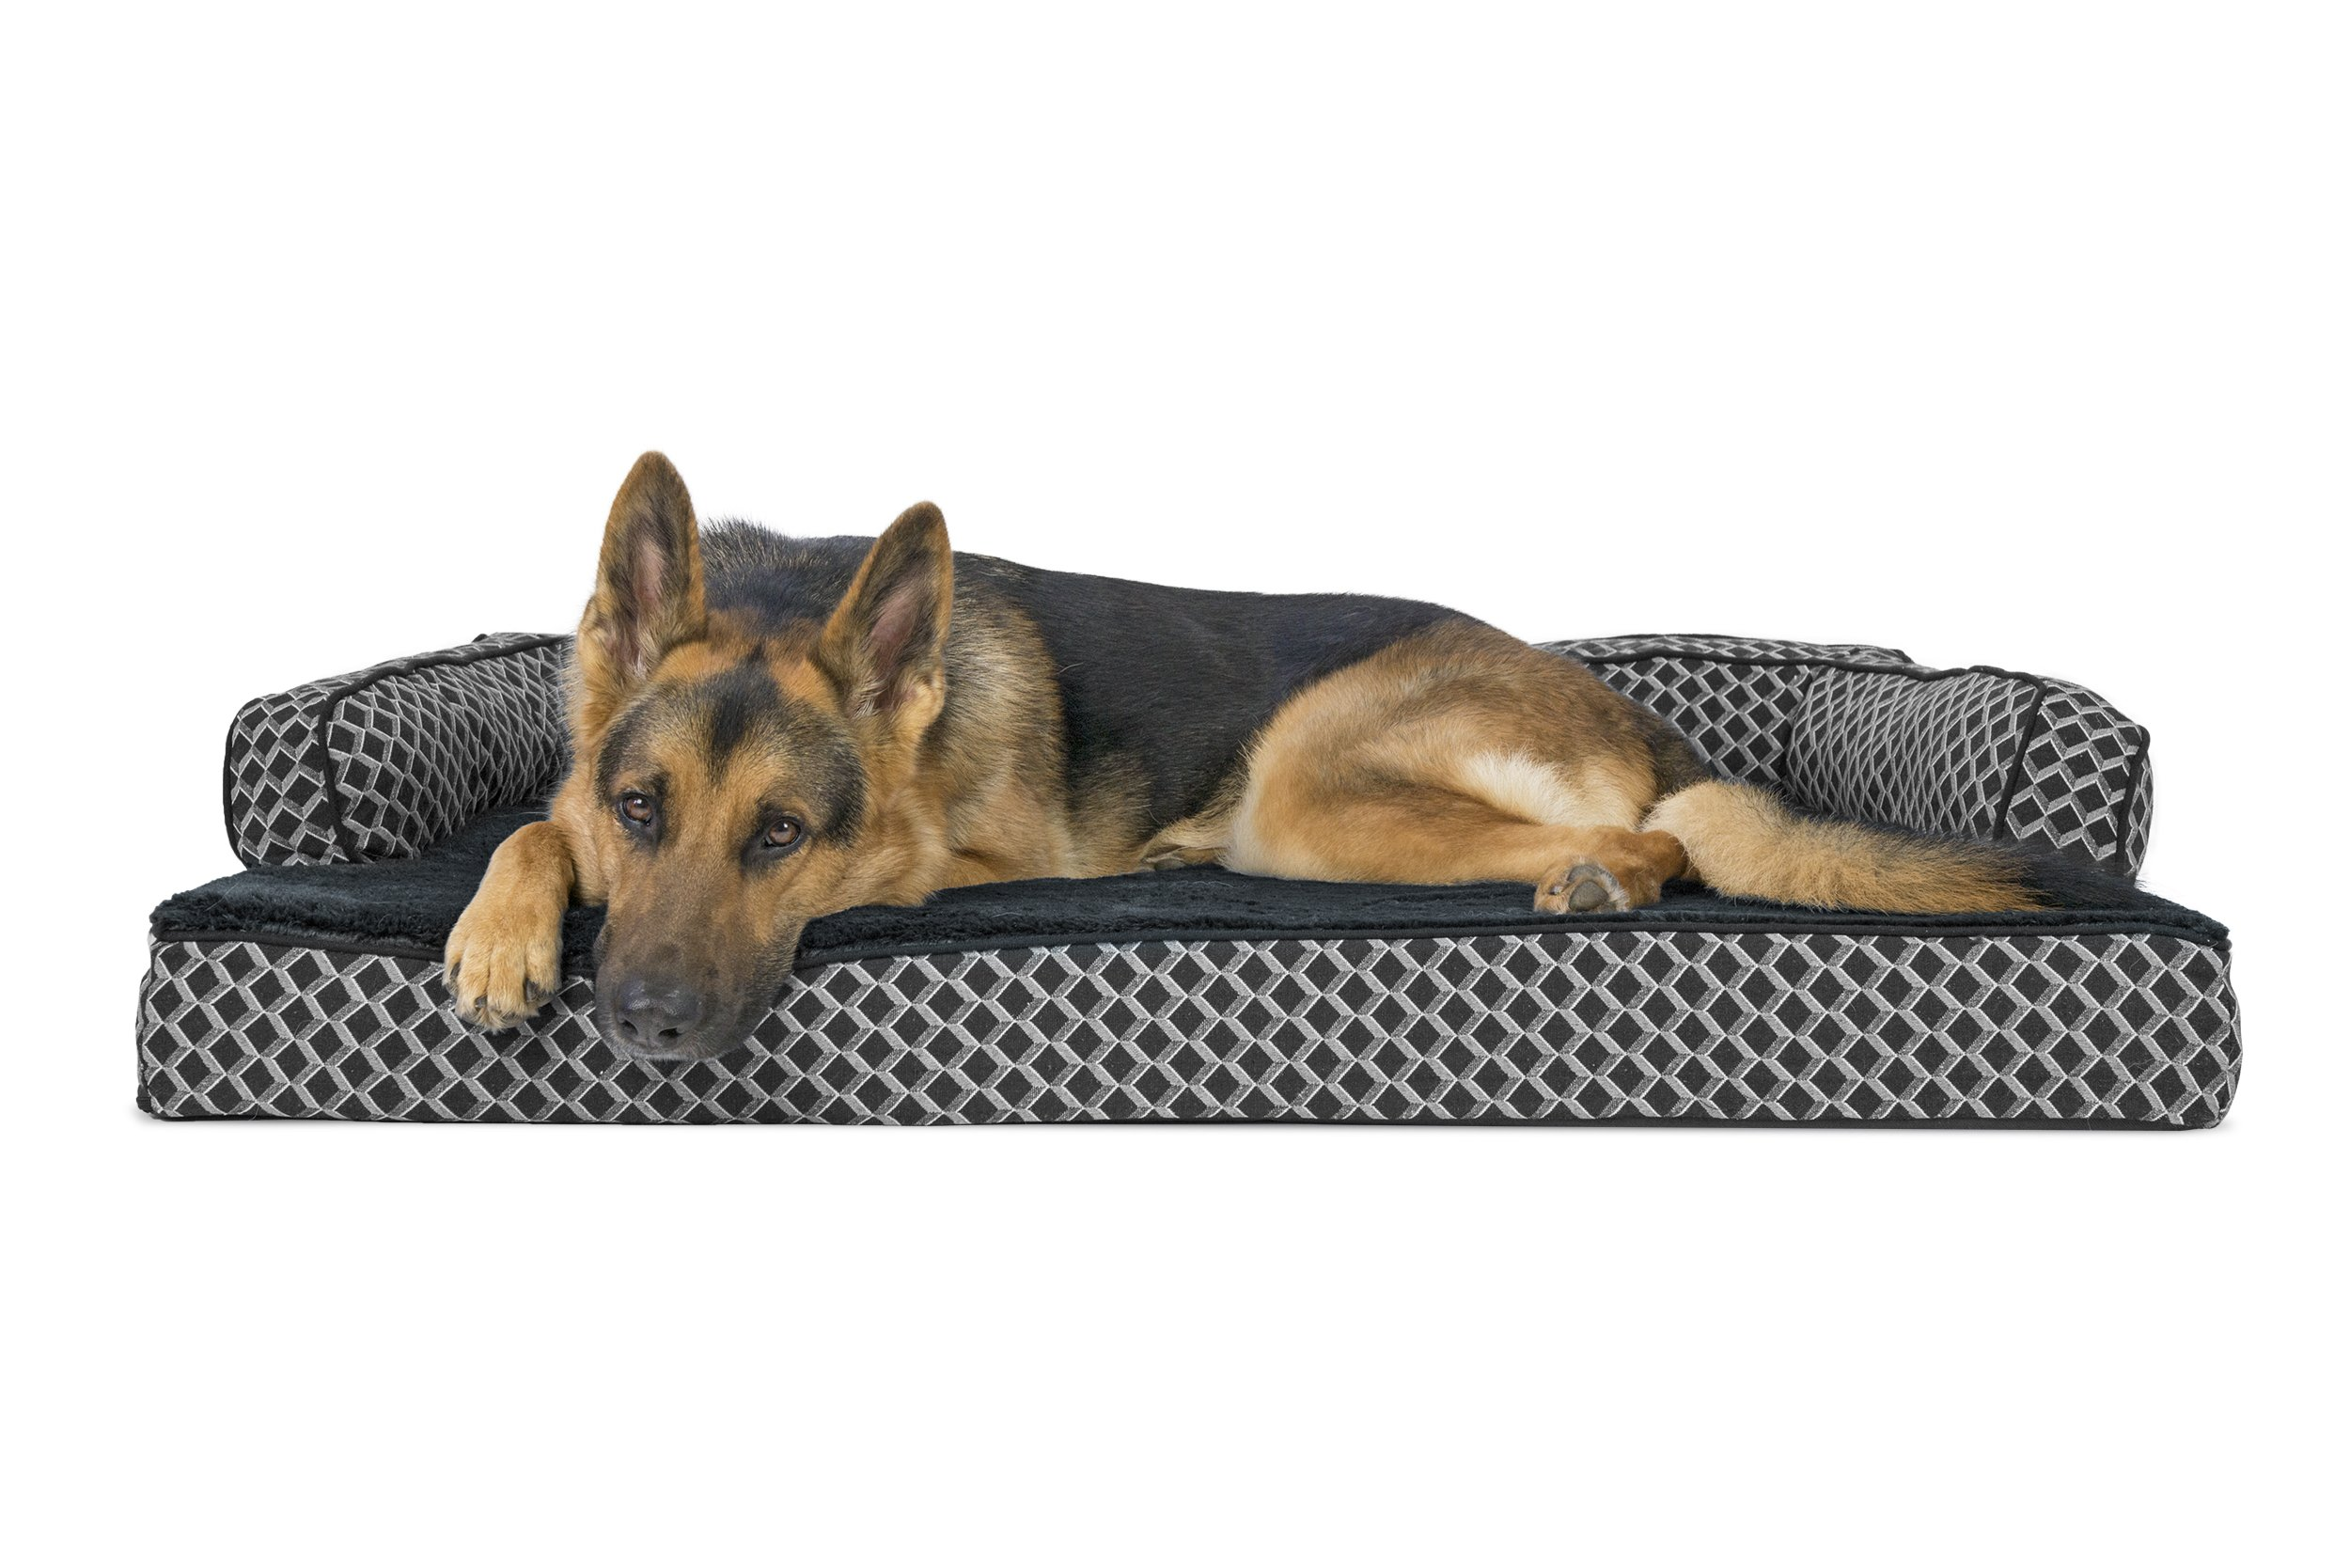 FurHaven Orthopedic Dog Couch/Sofa Bed for Dogs and Cats - Available in 17 Colors/Styles